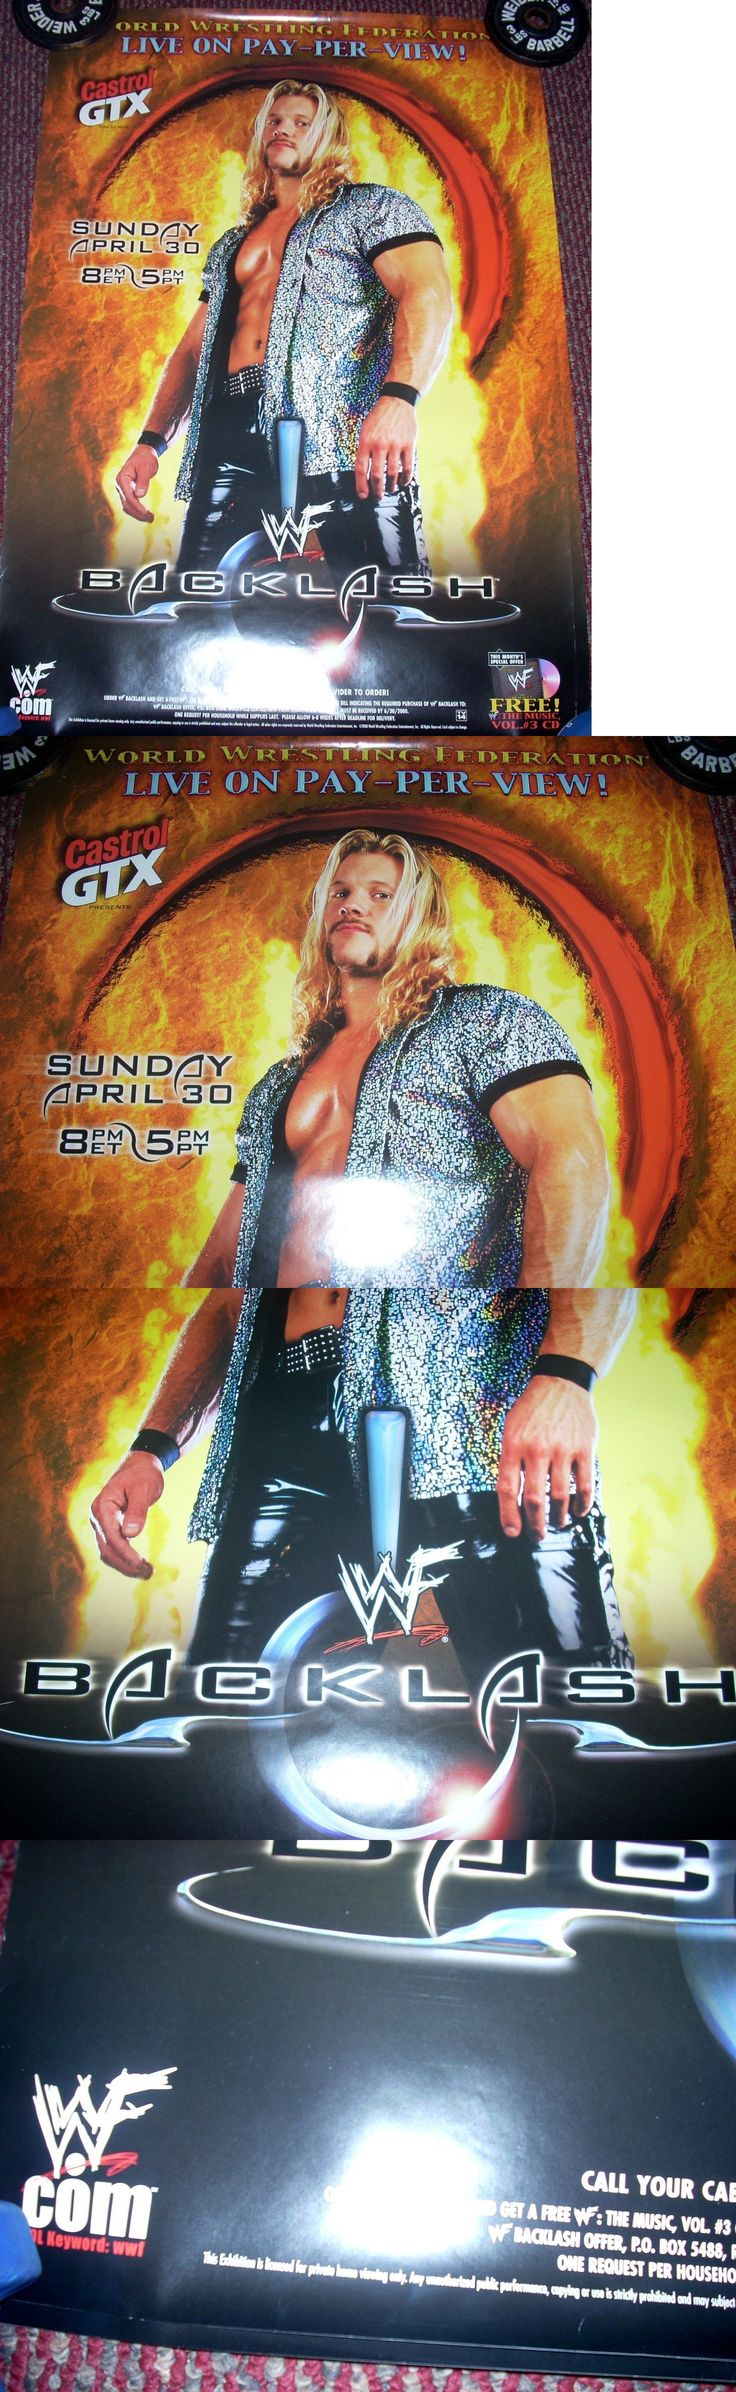 Wrestling 2902: Vintage Original Wwf Wwe Ppv Backlash 2000 Triple H Awesome Poster Rare 27X39 -> BUY IT NOW ONLY: $69 on eBay!